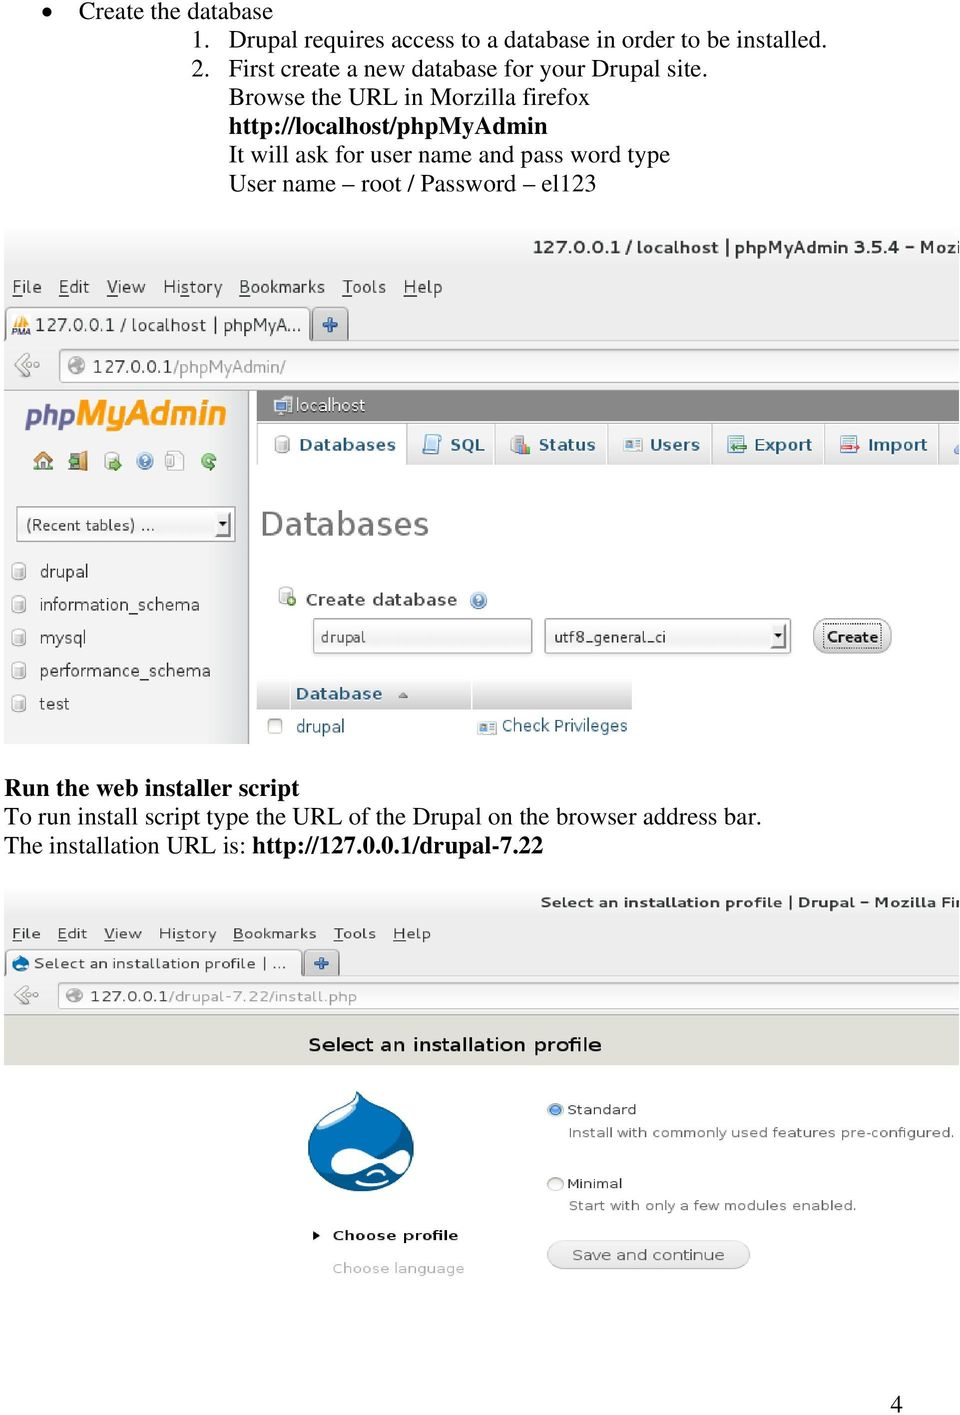 Browse the URL in Morzilla firefox http://localhost/phpmyadmin It will ask for user name and pass word type